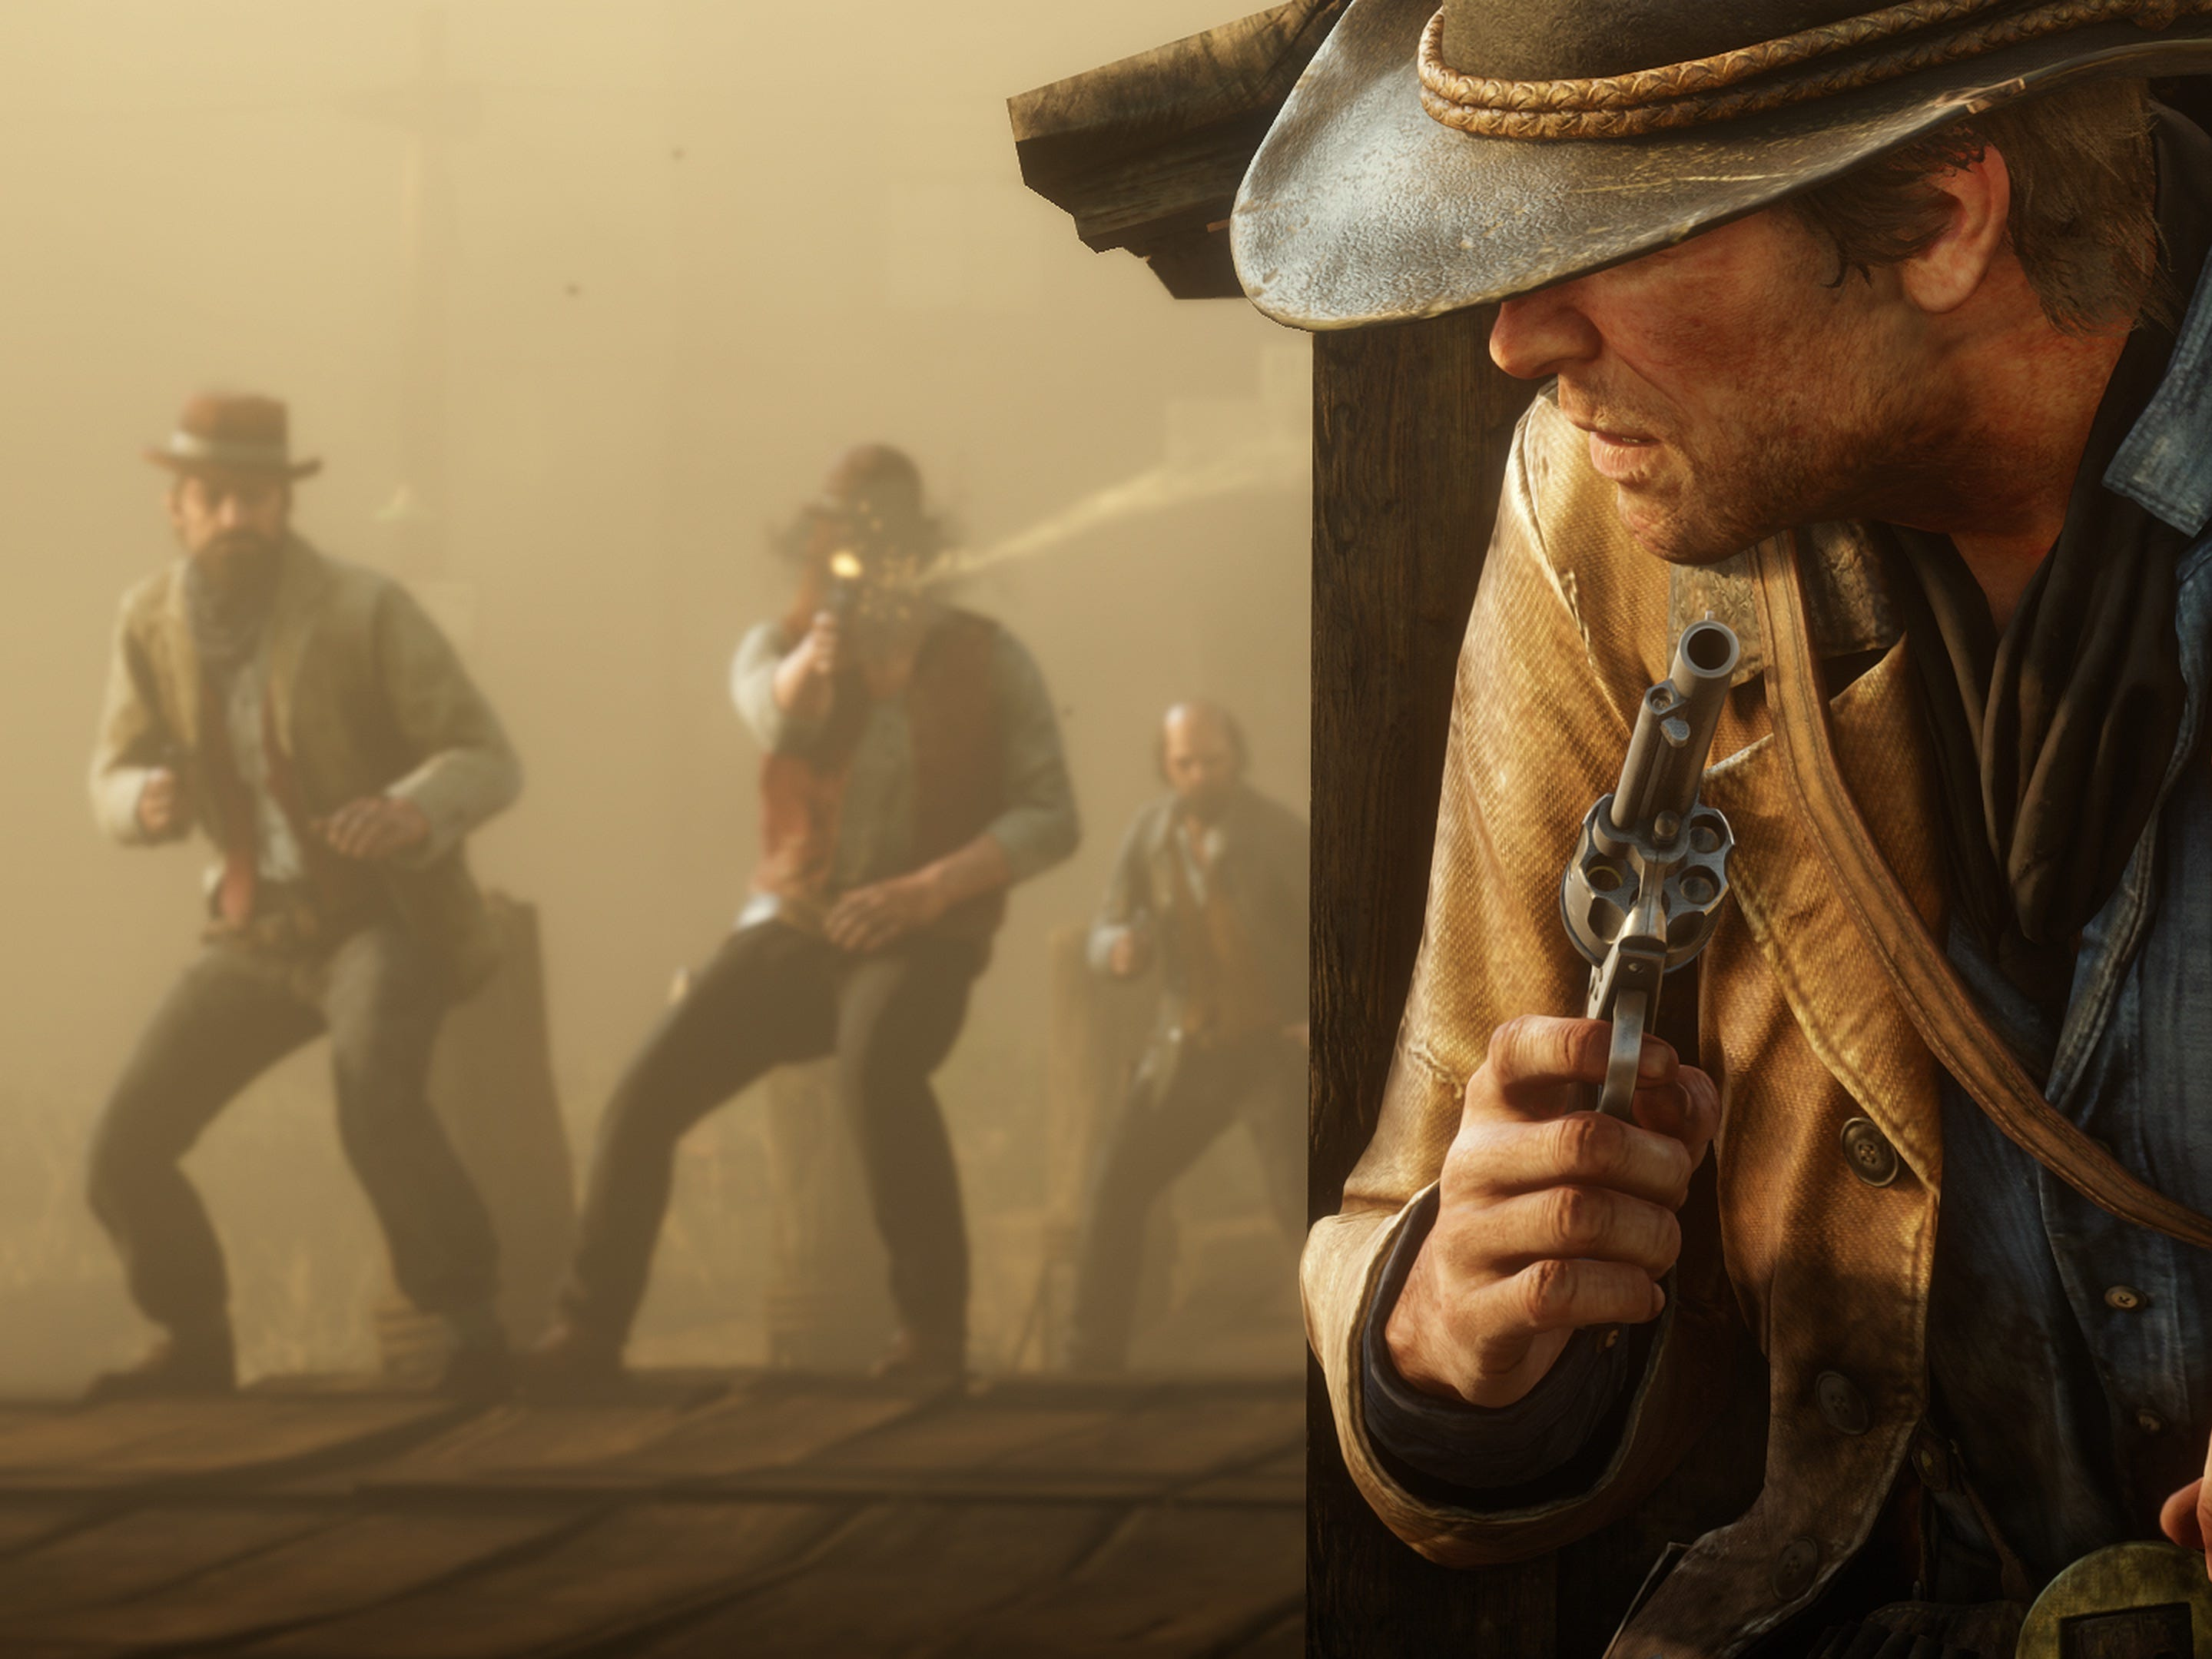 'Red Dead Redemption 2': First impressions from once upon a time in the West